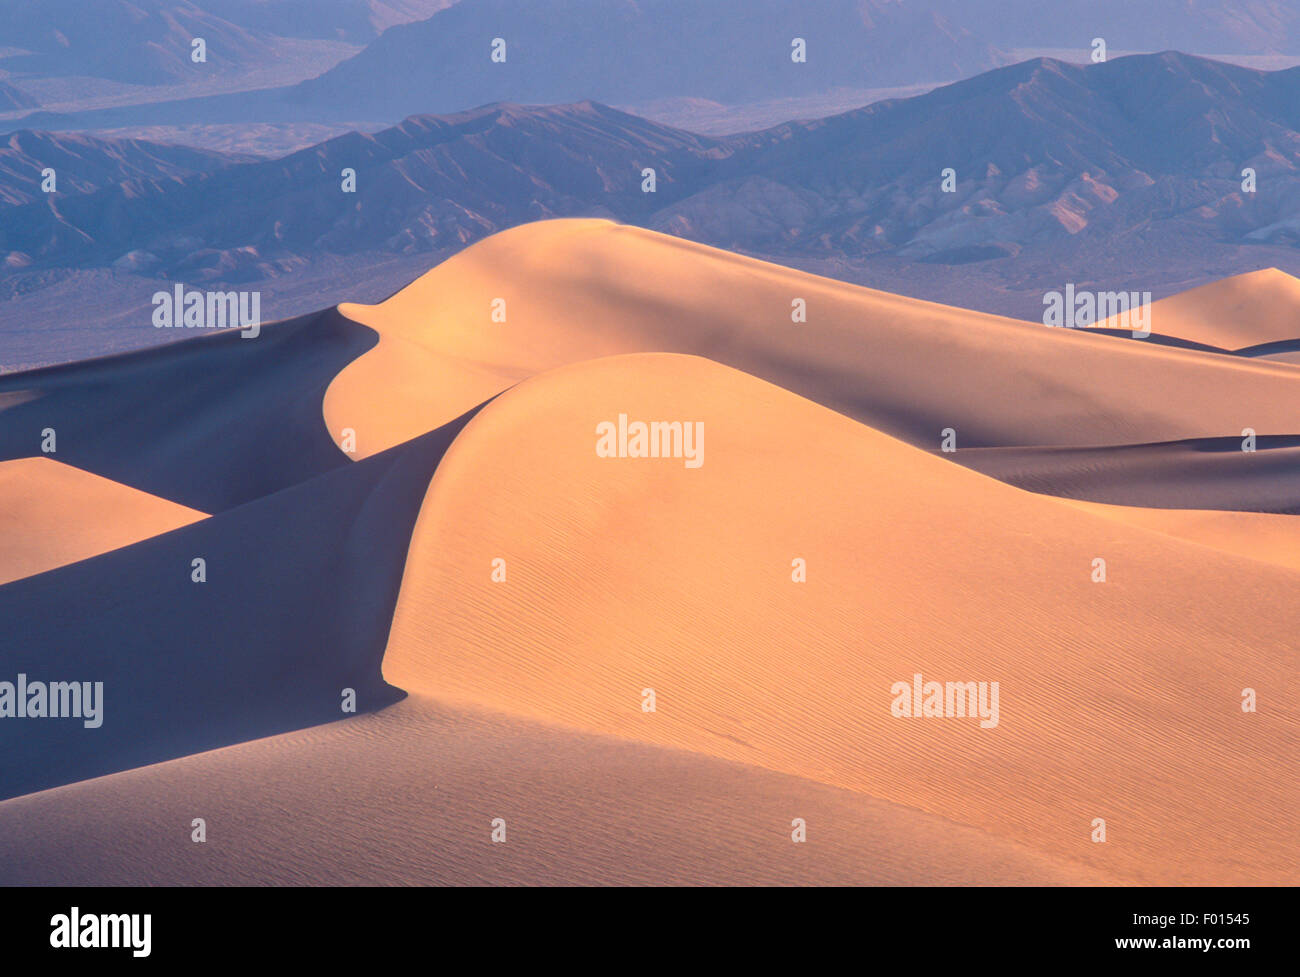 Mesquite Flat Sand Dunes, Death Valley National Park, California - Stock Image